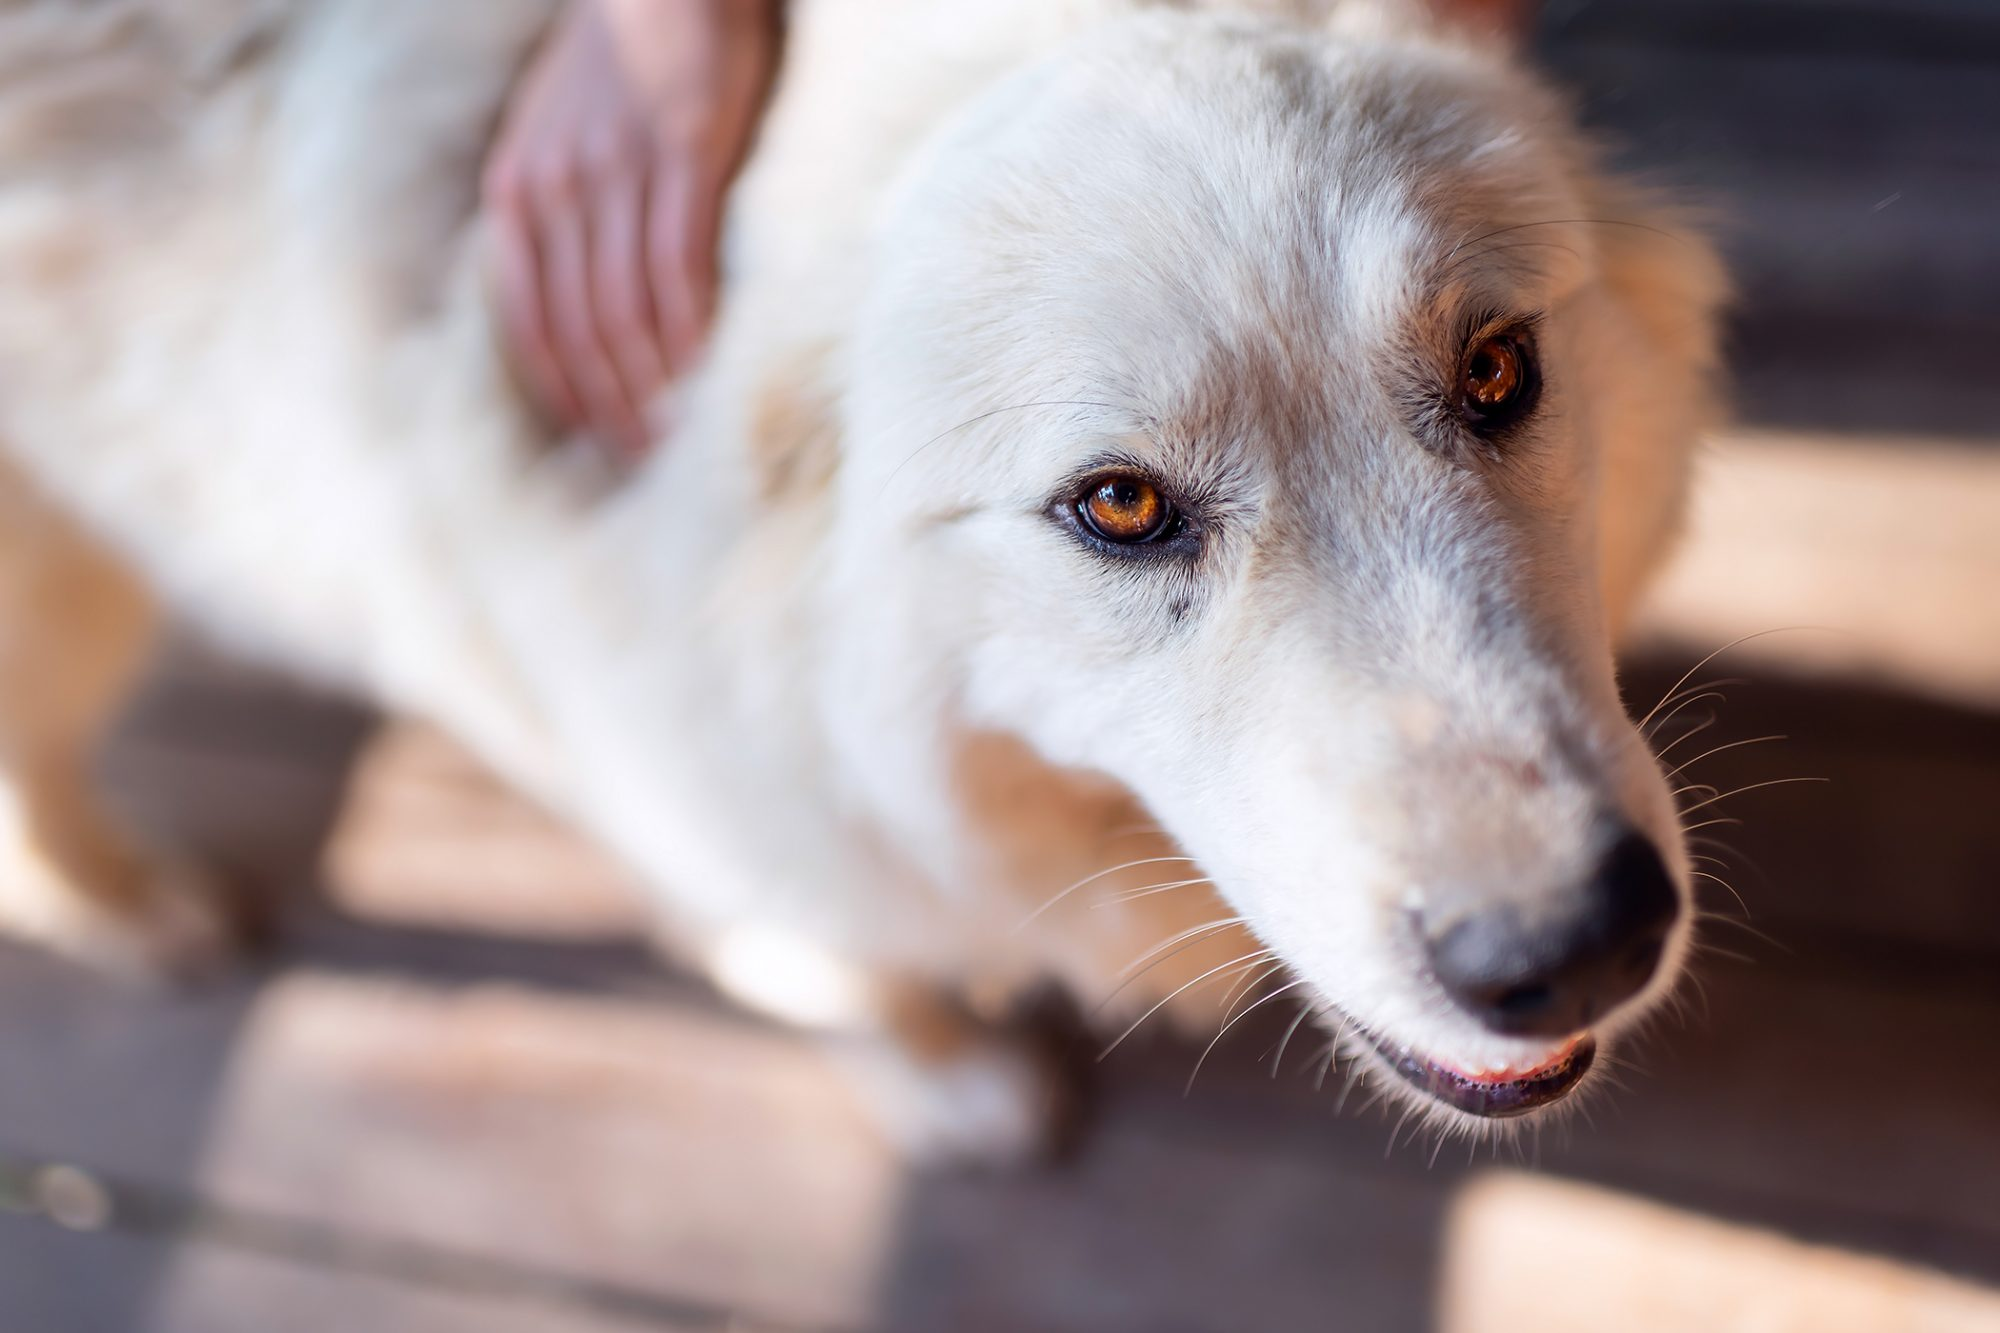 Closeup of young white great pyrenees dog looking up